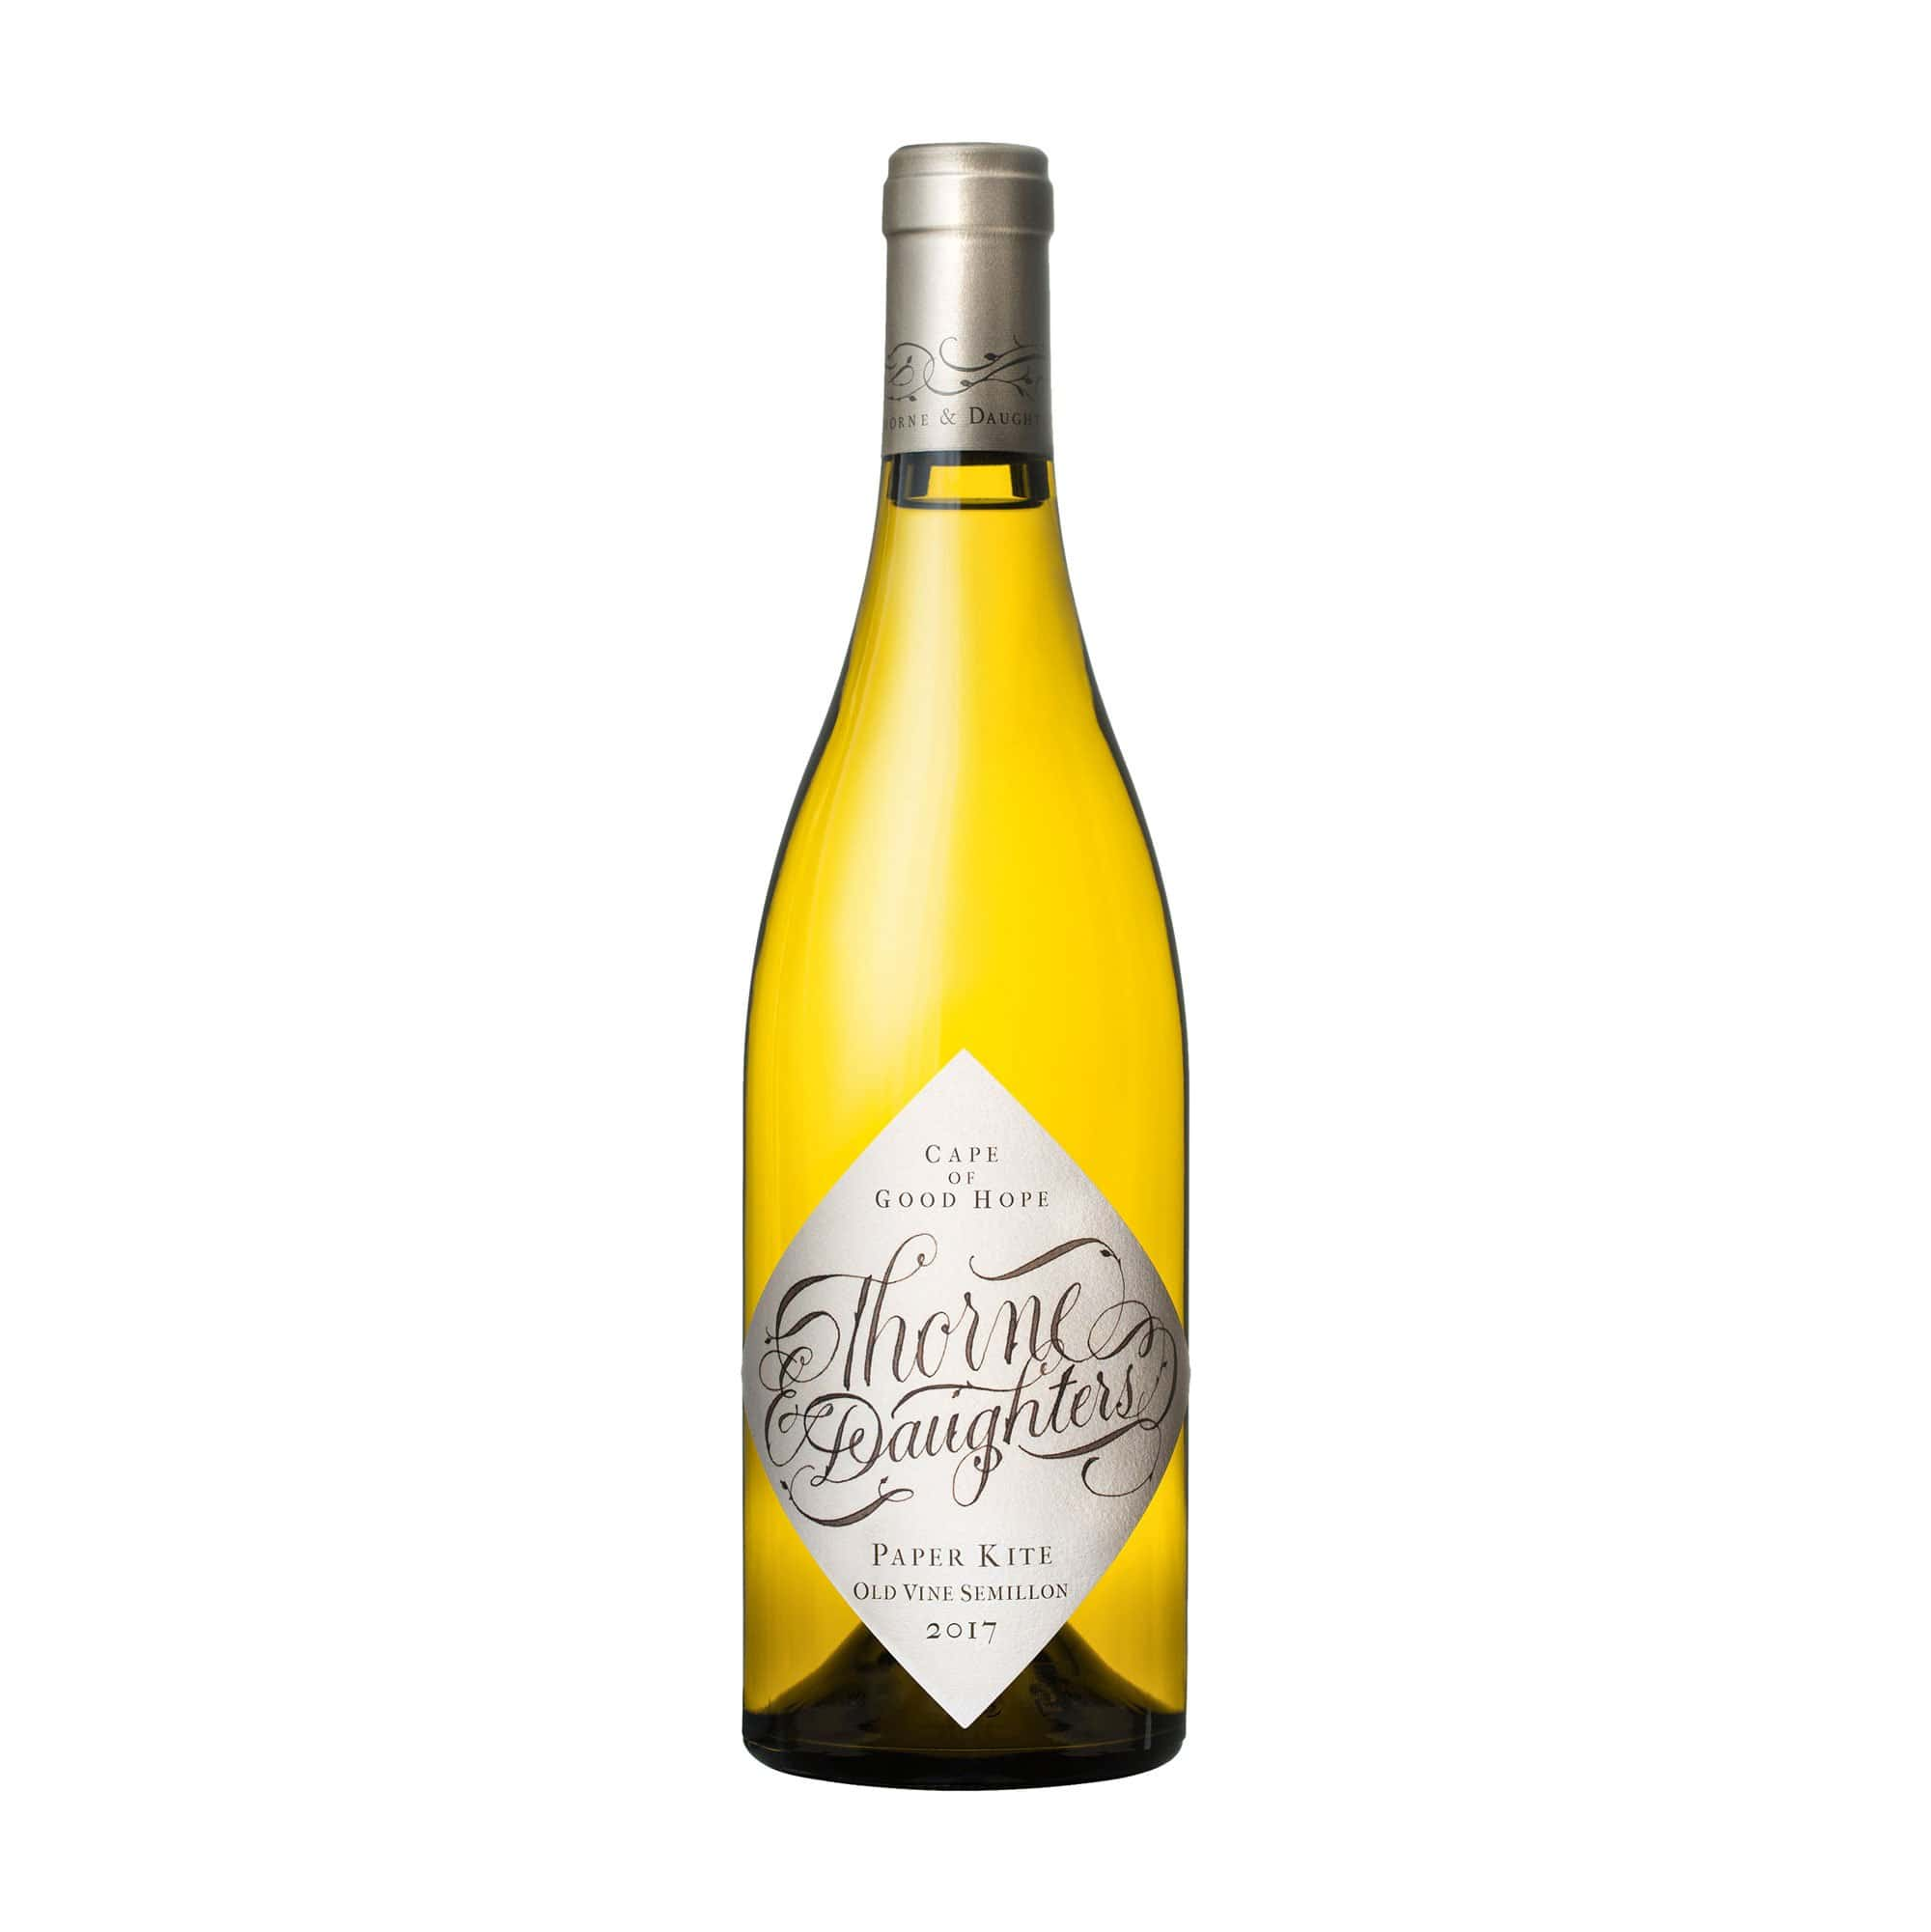 White Wine Thorne & Daughters Paper Kite Semillon Blanc Swartland 2019